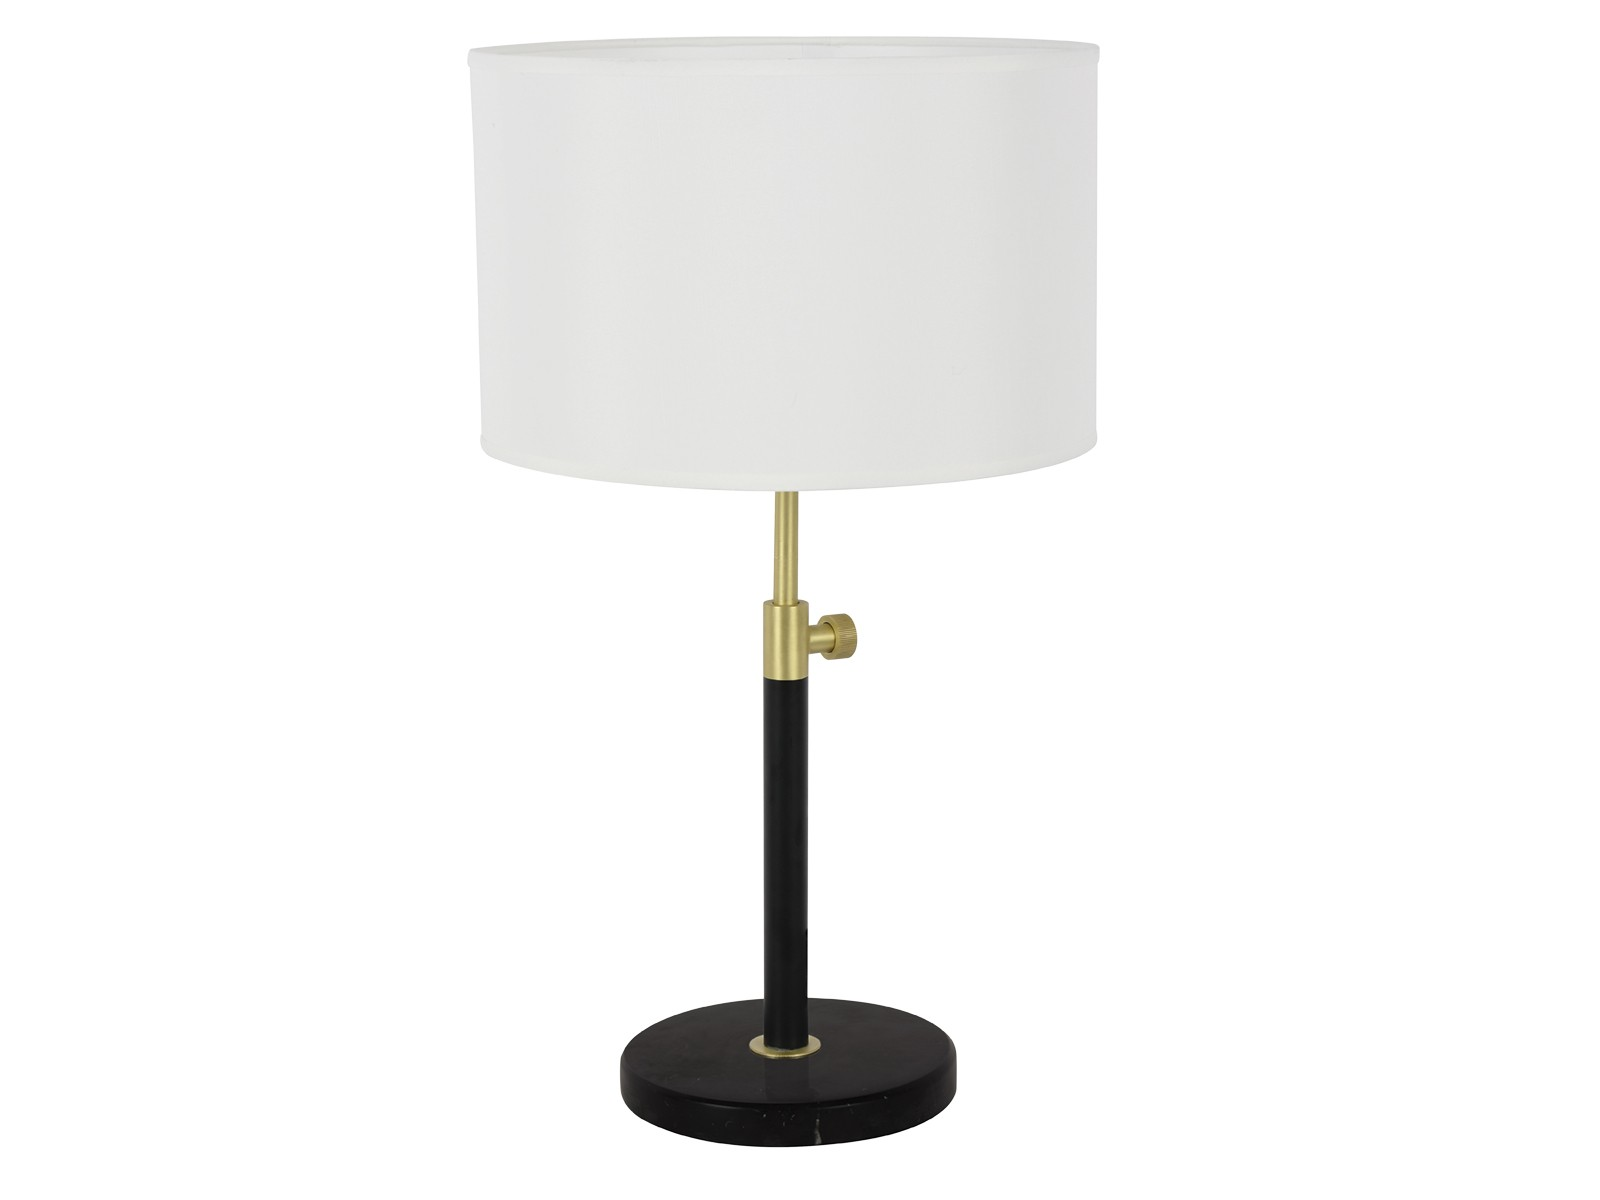 Albus 1 Light Table Lamp in Brass/Matte Black by Beacon Lighting, a Table & Bedside Lamps for sale on Style Sourcebook